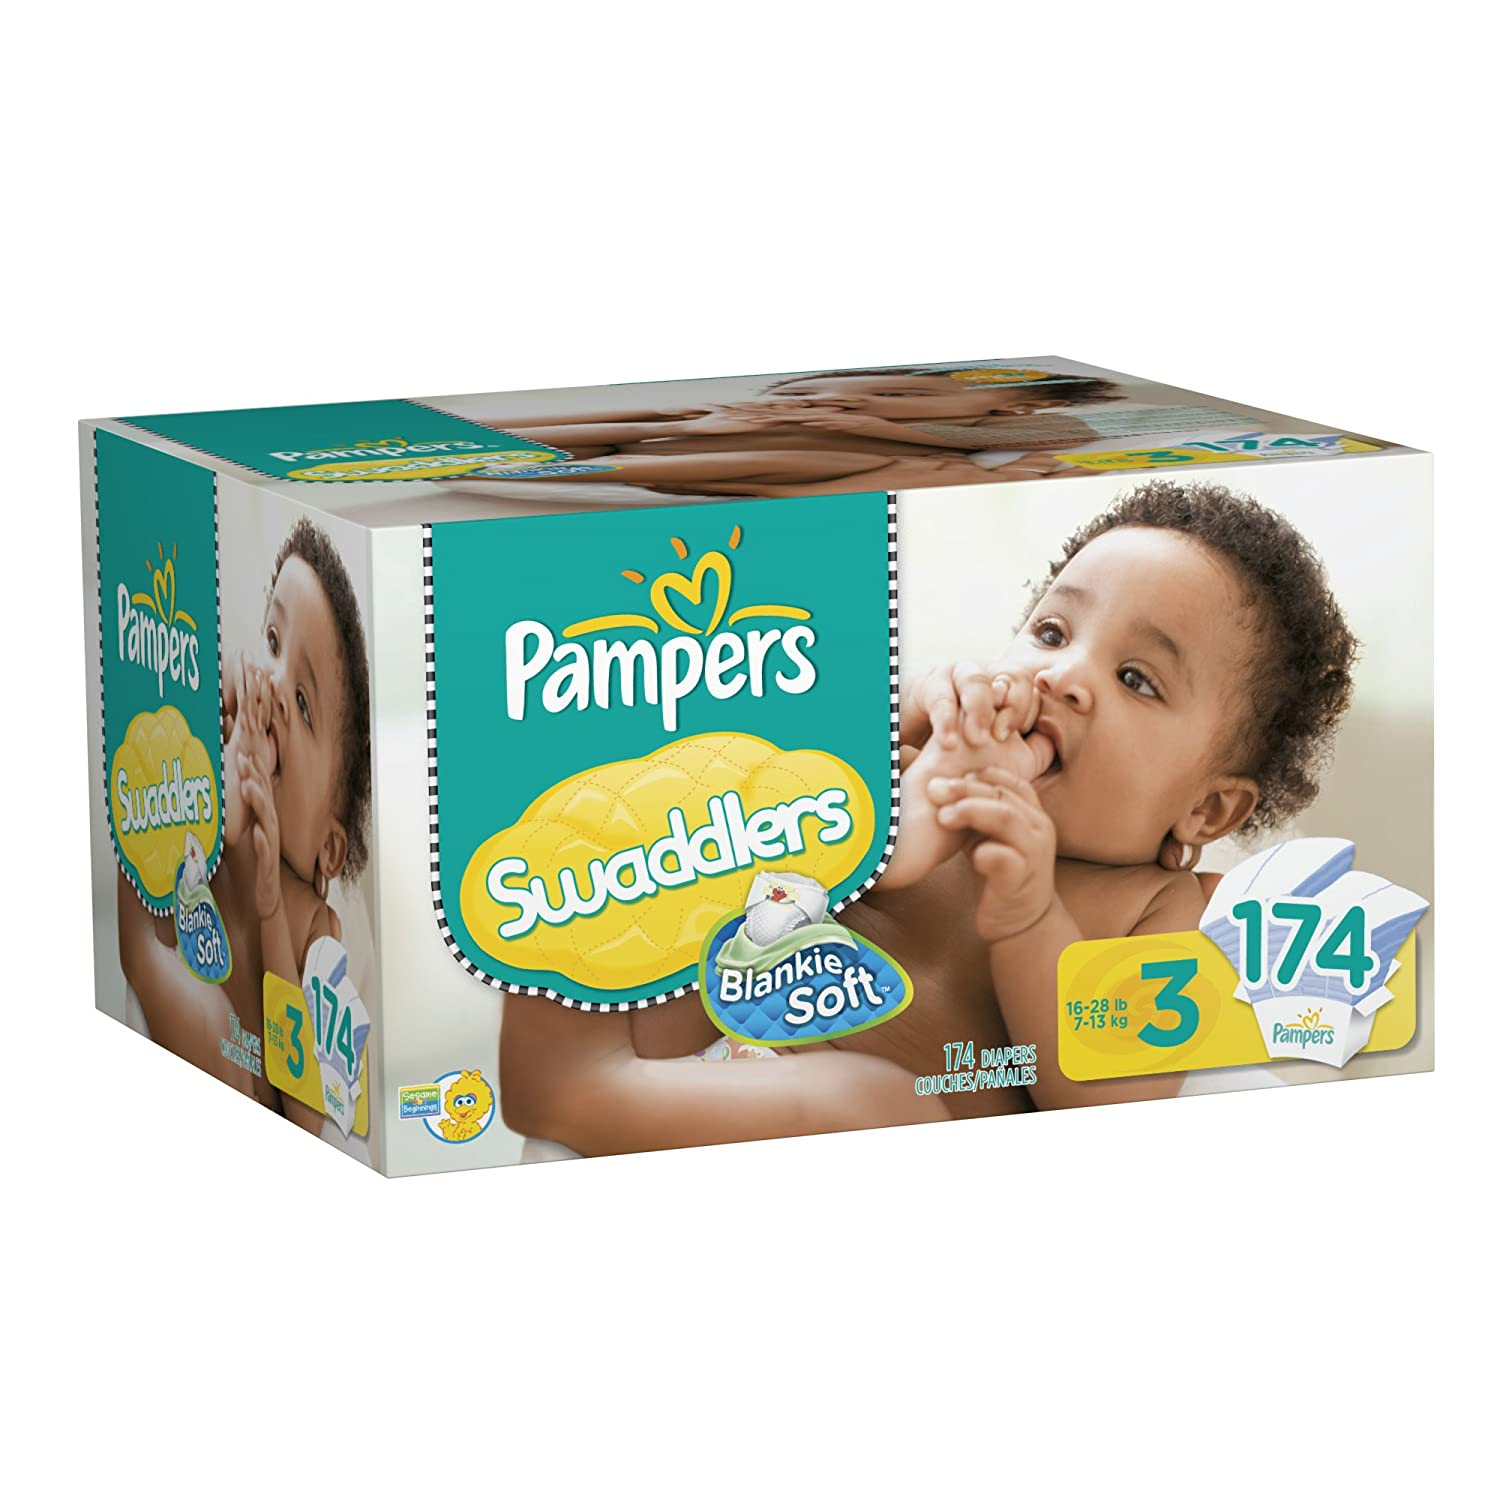 Pampers Swaddlers Diapers Economy Pack Plus Size 3 174 Count Packaging May Vary at Sears.com